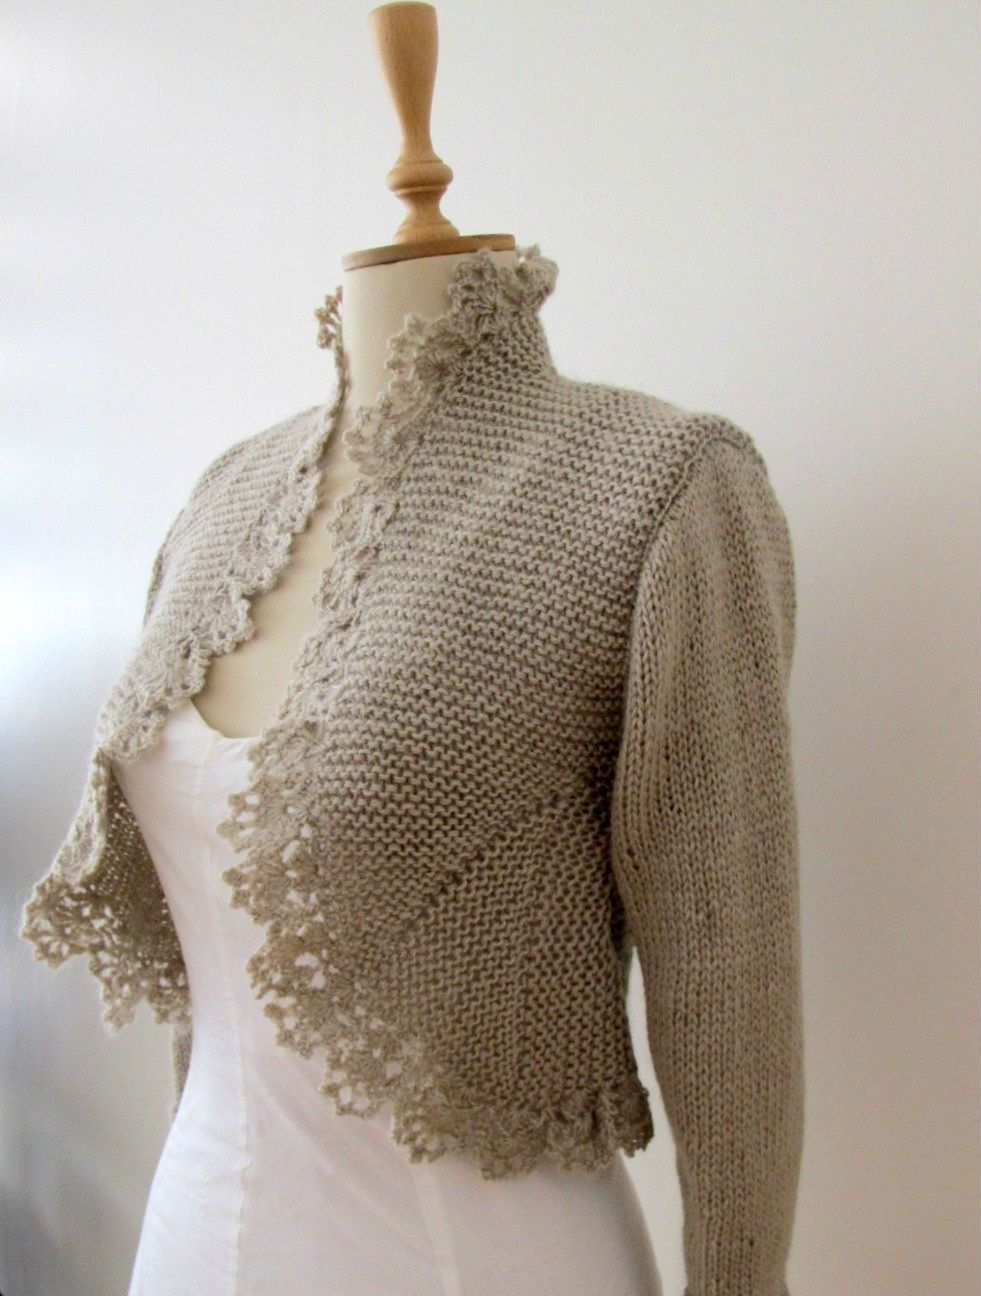 Knitted Cardigan Crochet Border Jacket 3/4 Sleeve Bolero Shrug ...